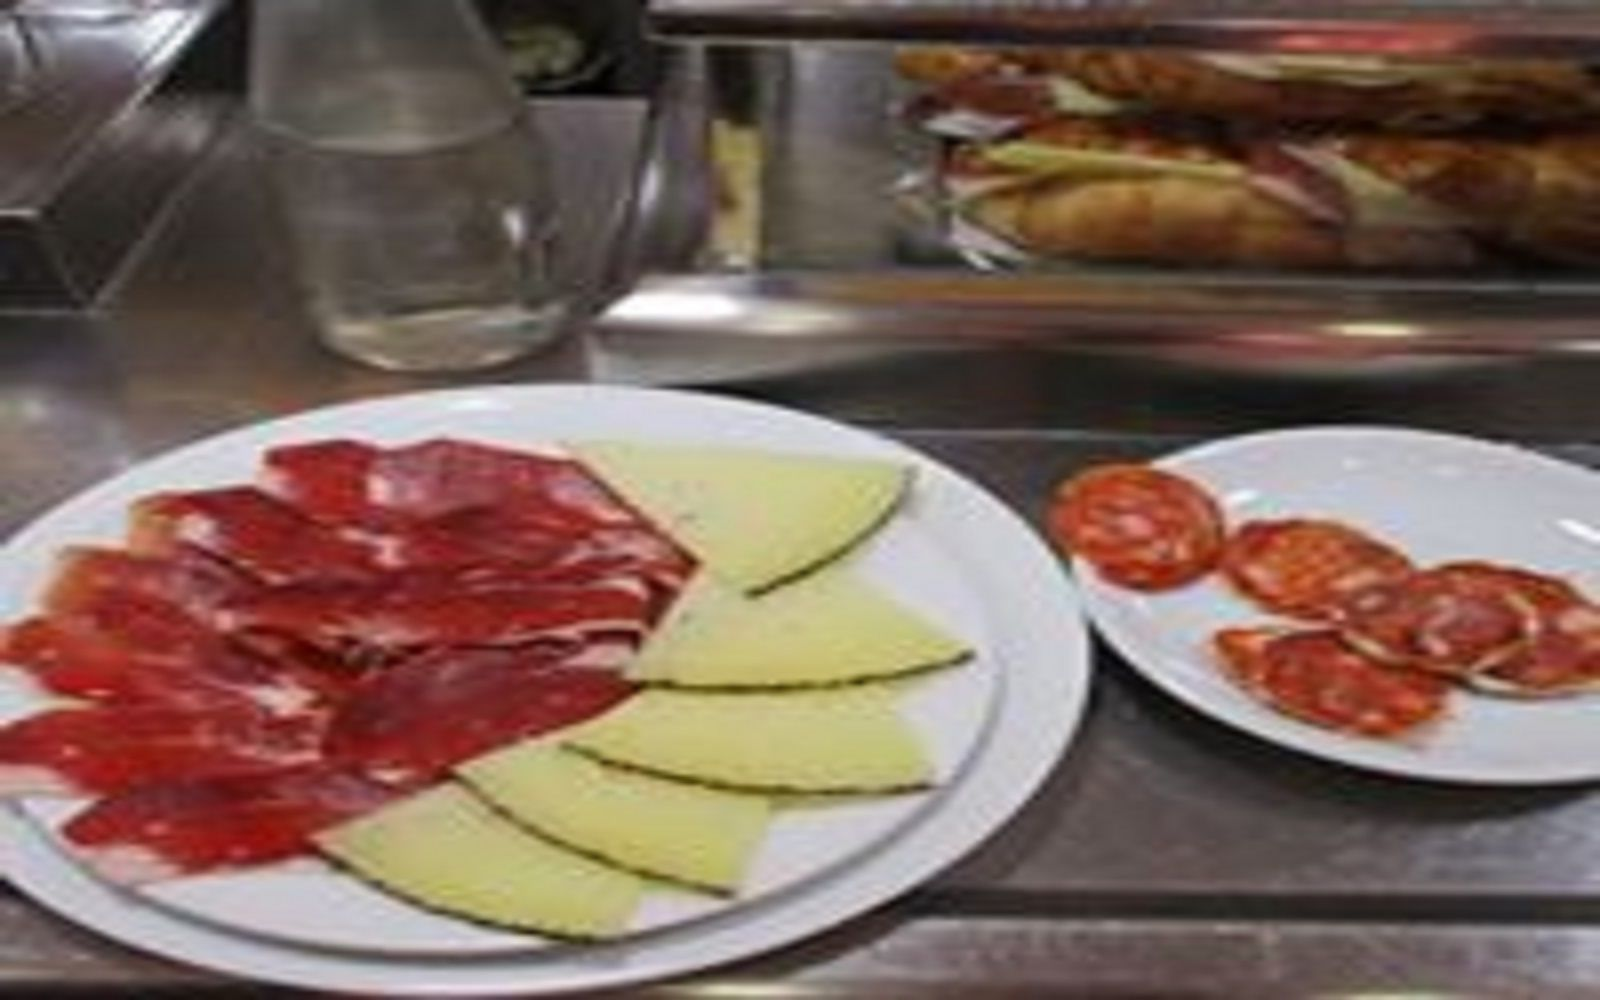 Tapas and history tour through old Madrid